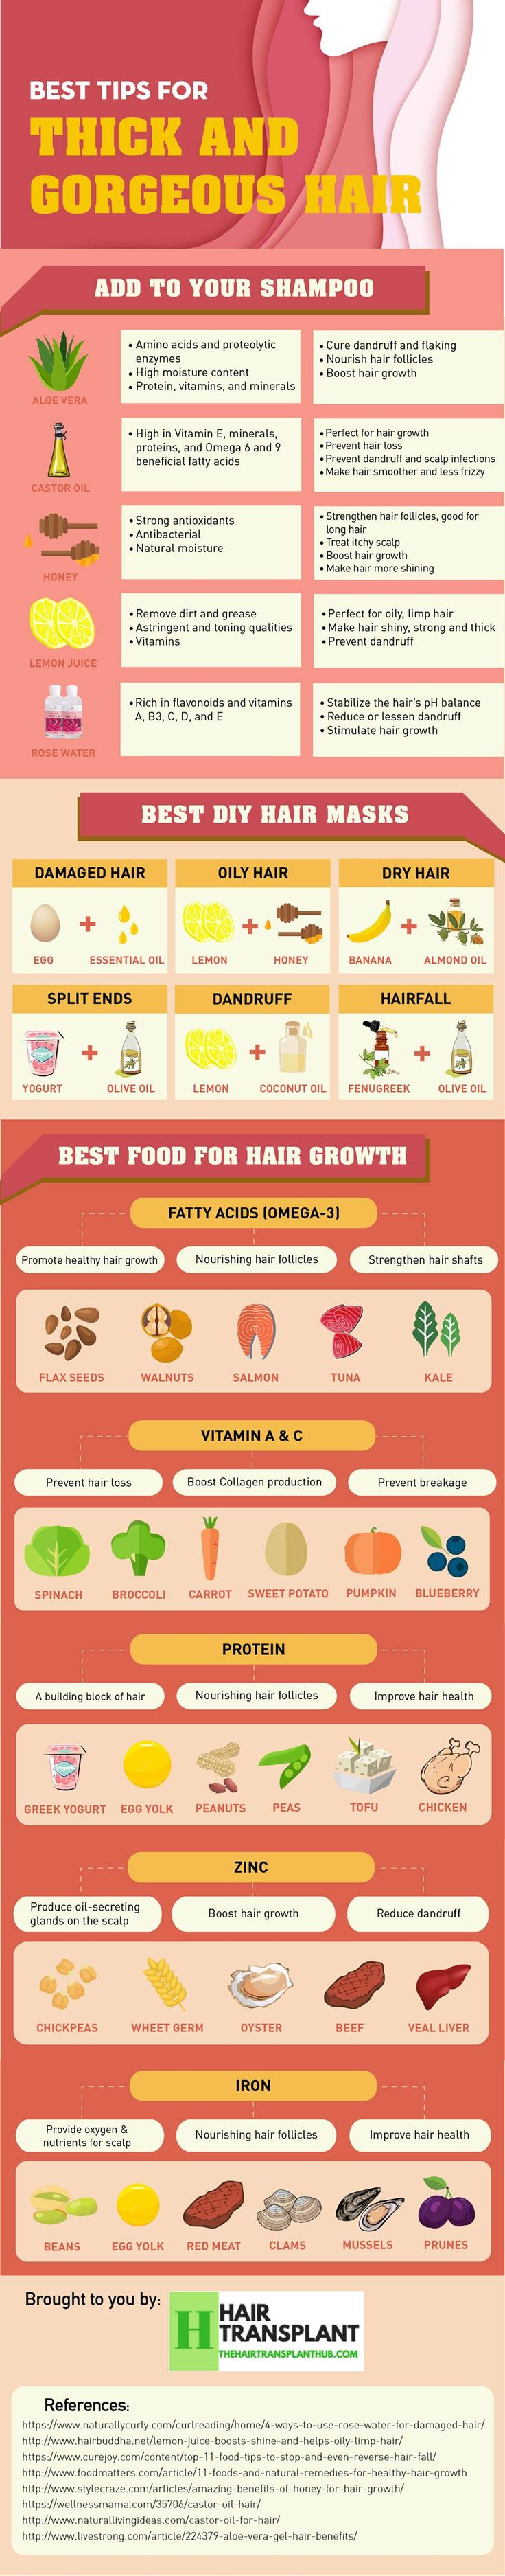 Here are some of the best natural hair care tips. Learn how to get thick & gorgeous hair by adding a few natural ingredients to your shampoo.